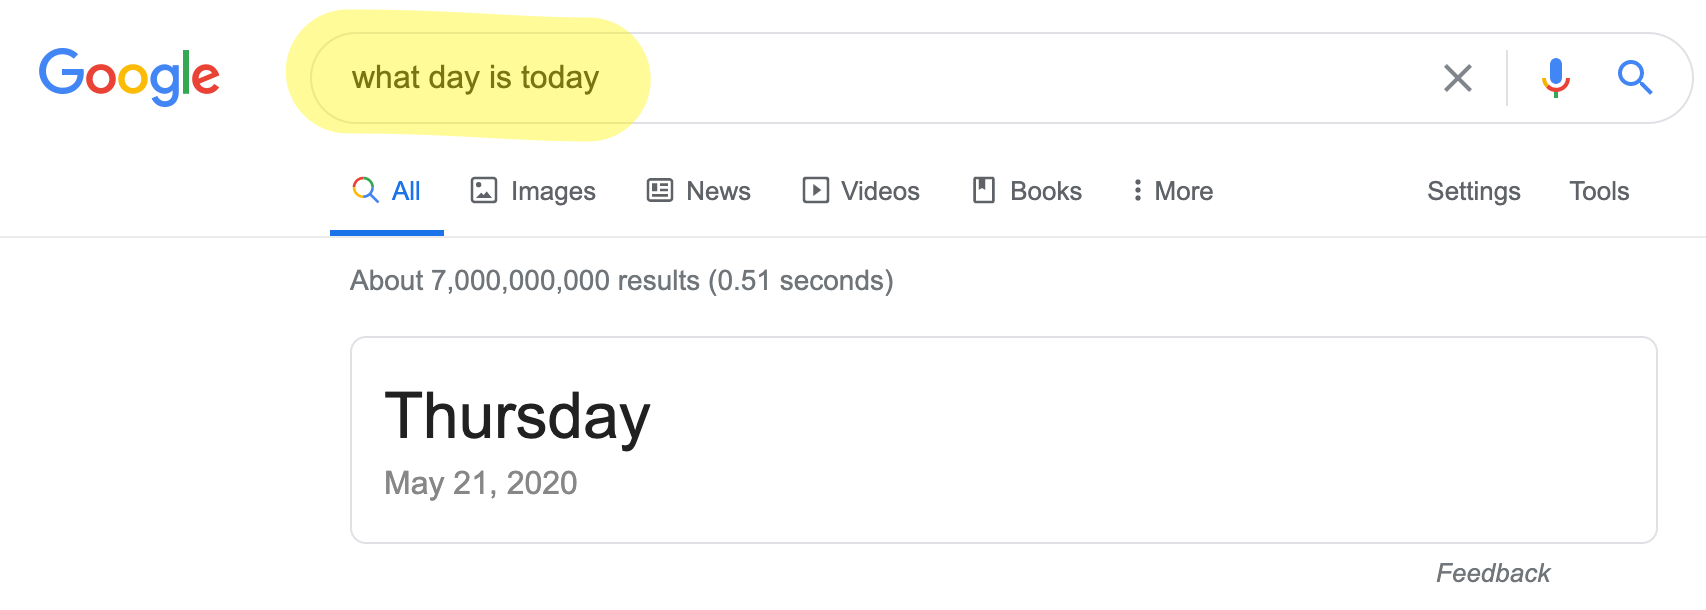 """Google direct answer to """"what day is today"""""""